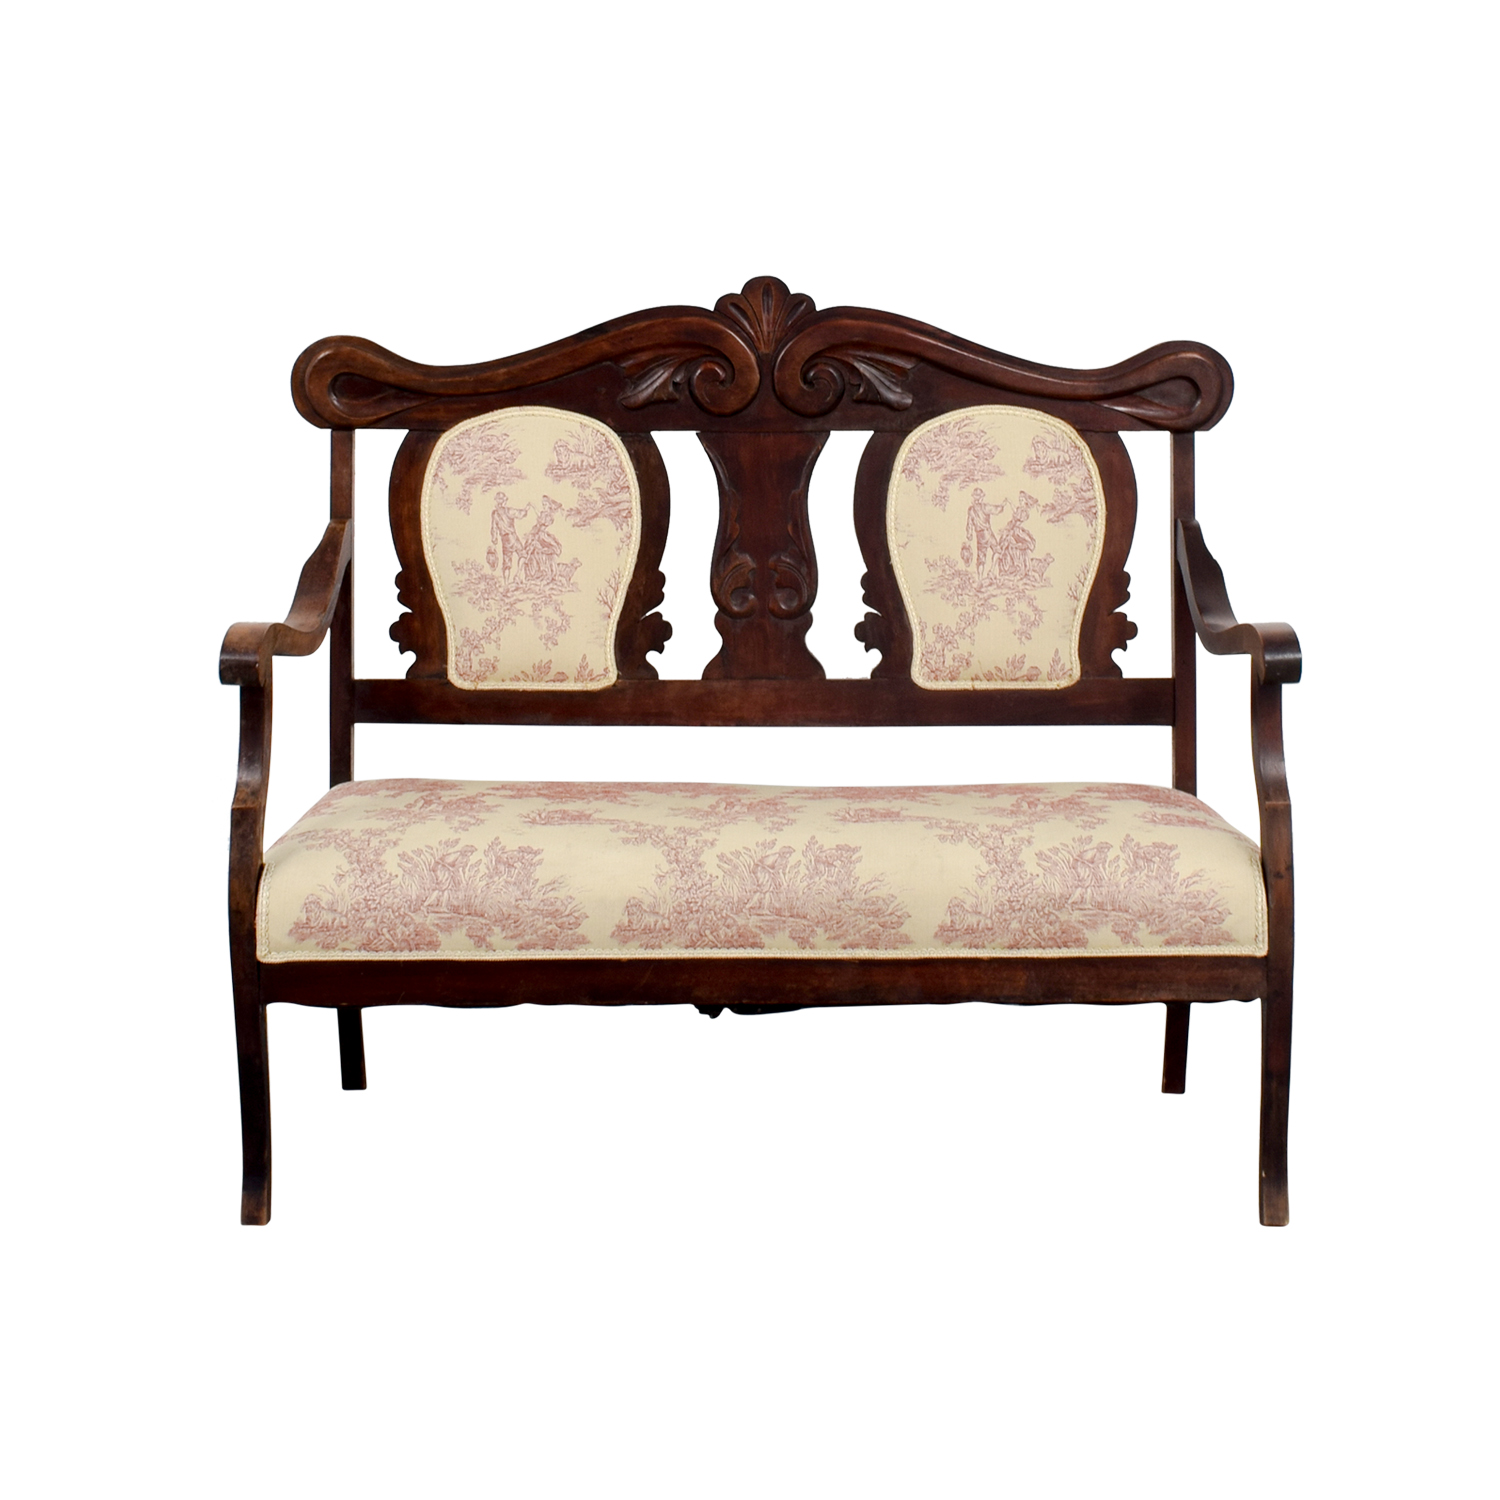 buy Antique French Toile Settee online